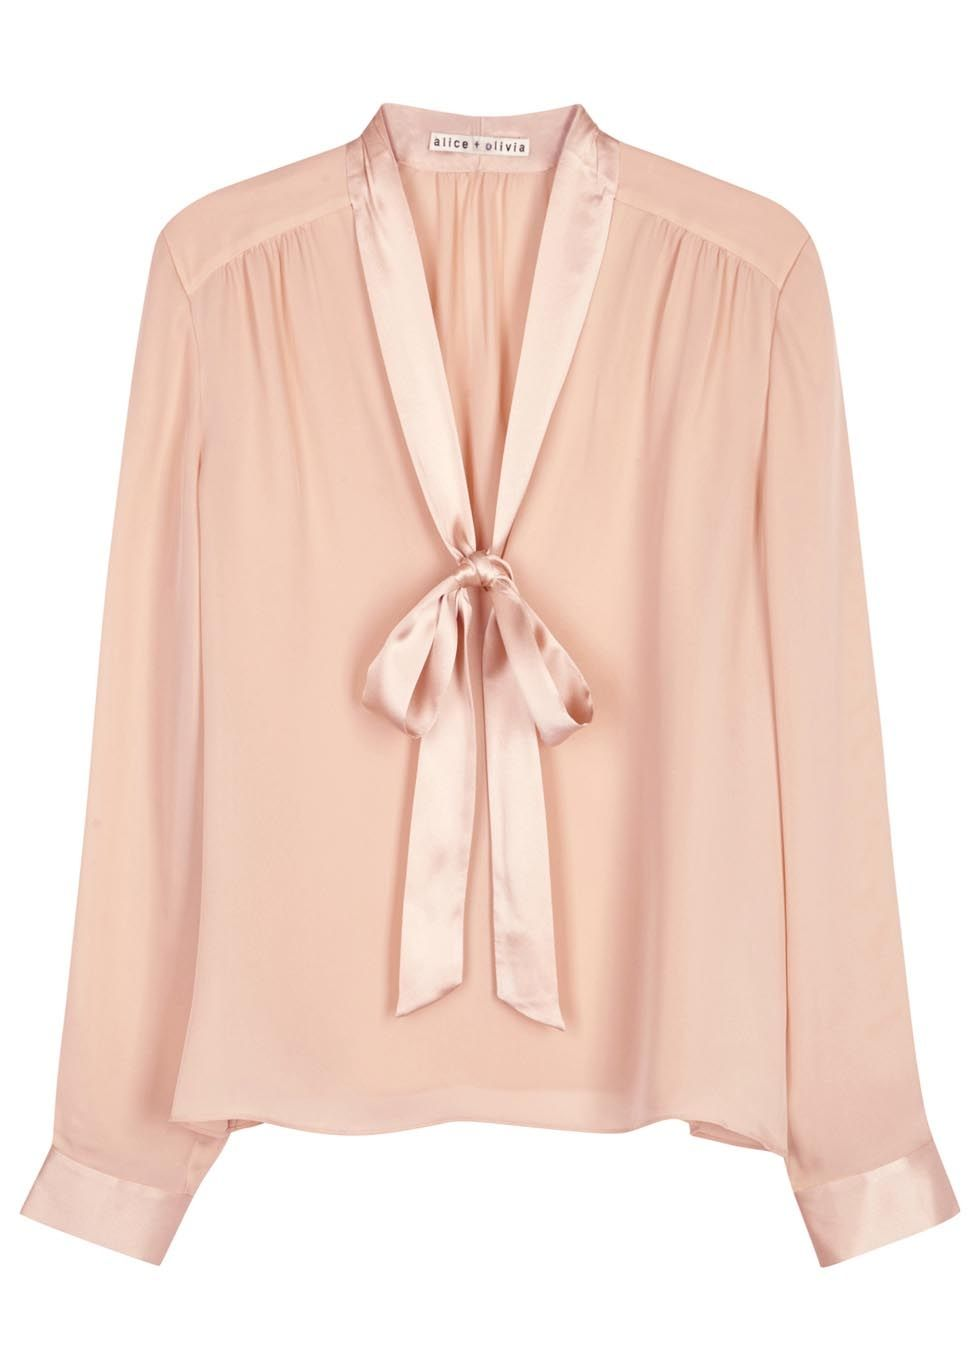 fd73fce882ea9c Alice + Olivia light pink silk crepe blouse Satin neck ties and  button-fastening cuffs